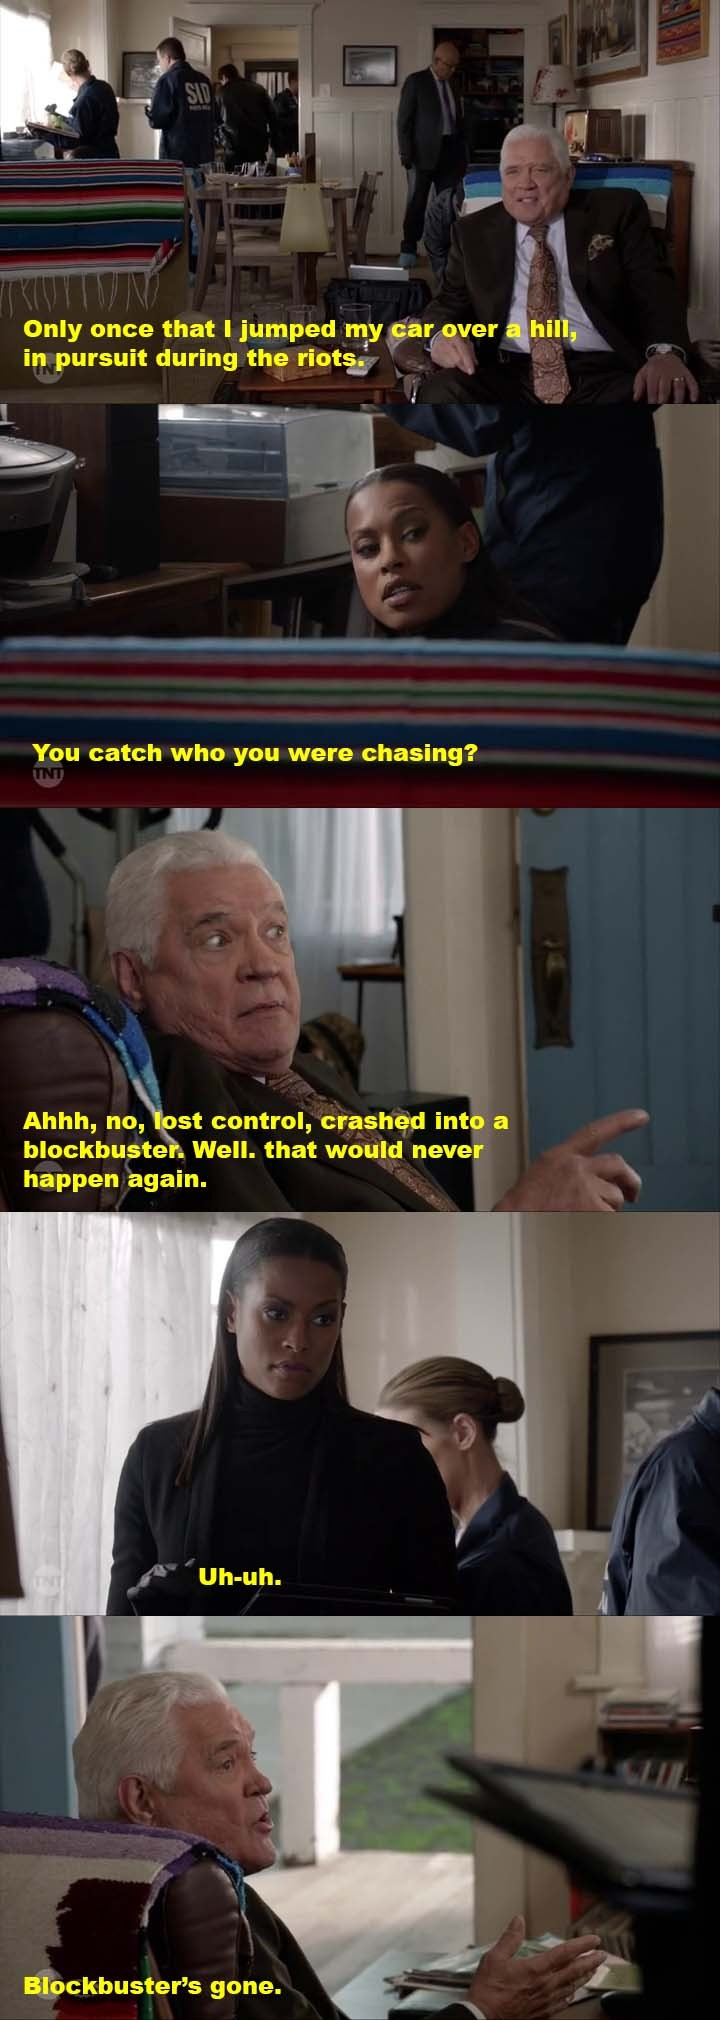 Lt. Provenza: I love you more and more.